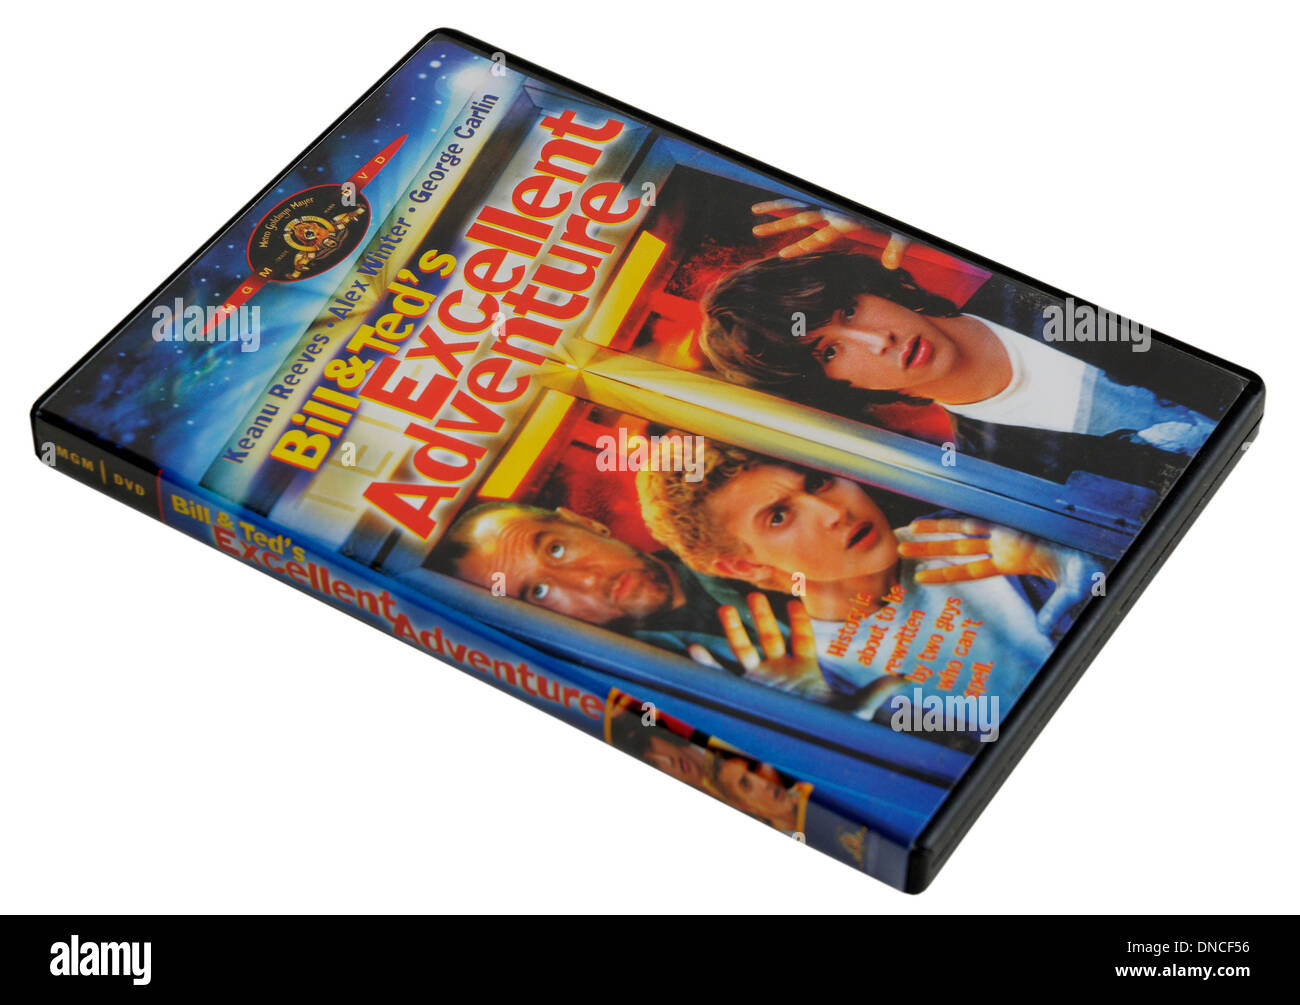 Bill and Ted's Excellent Adventure DVD - Stock Image